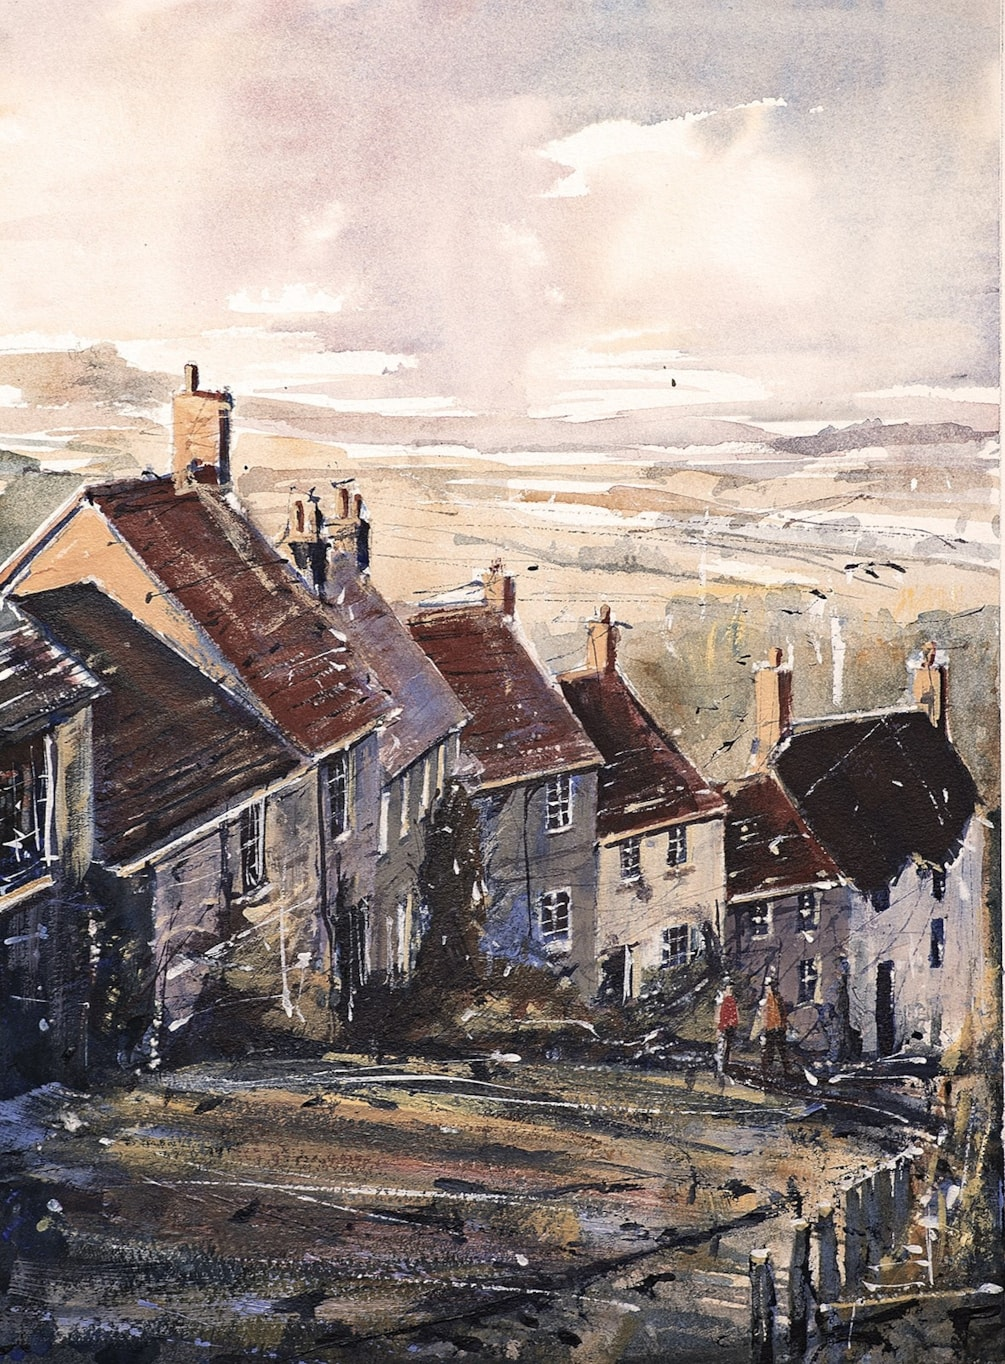 Gold Hill, Shaftsbury Dorset 9.5 x 13 inches